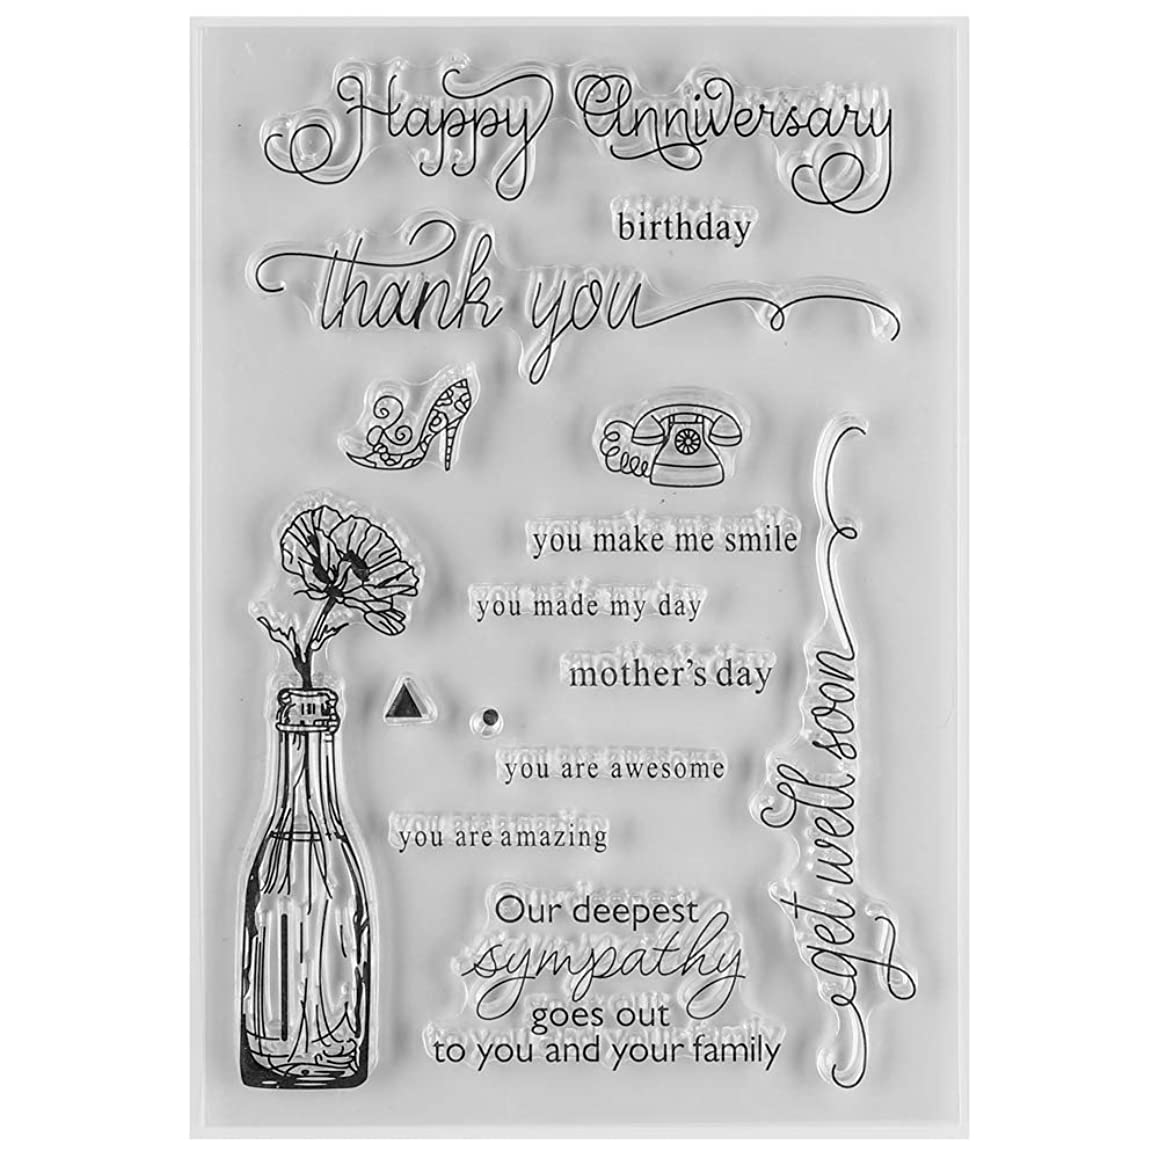 MaGuo Happy Anniversary and Birther Day with Flower in Pot Clear Rubber Stamps for DIY Scrapbooking Paper Craft or Card Making Decoration